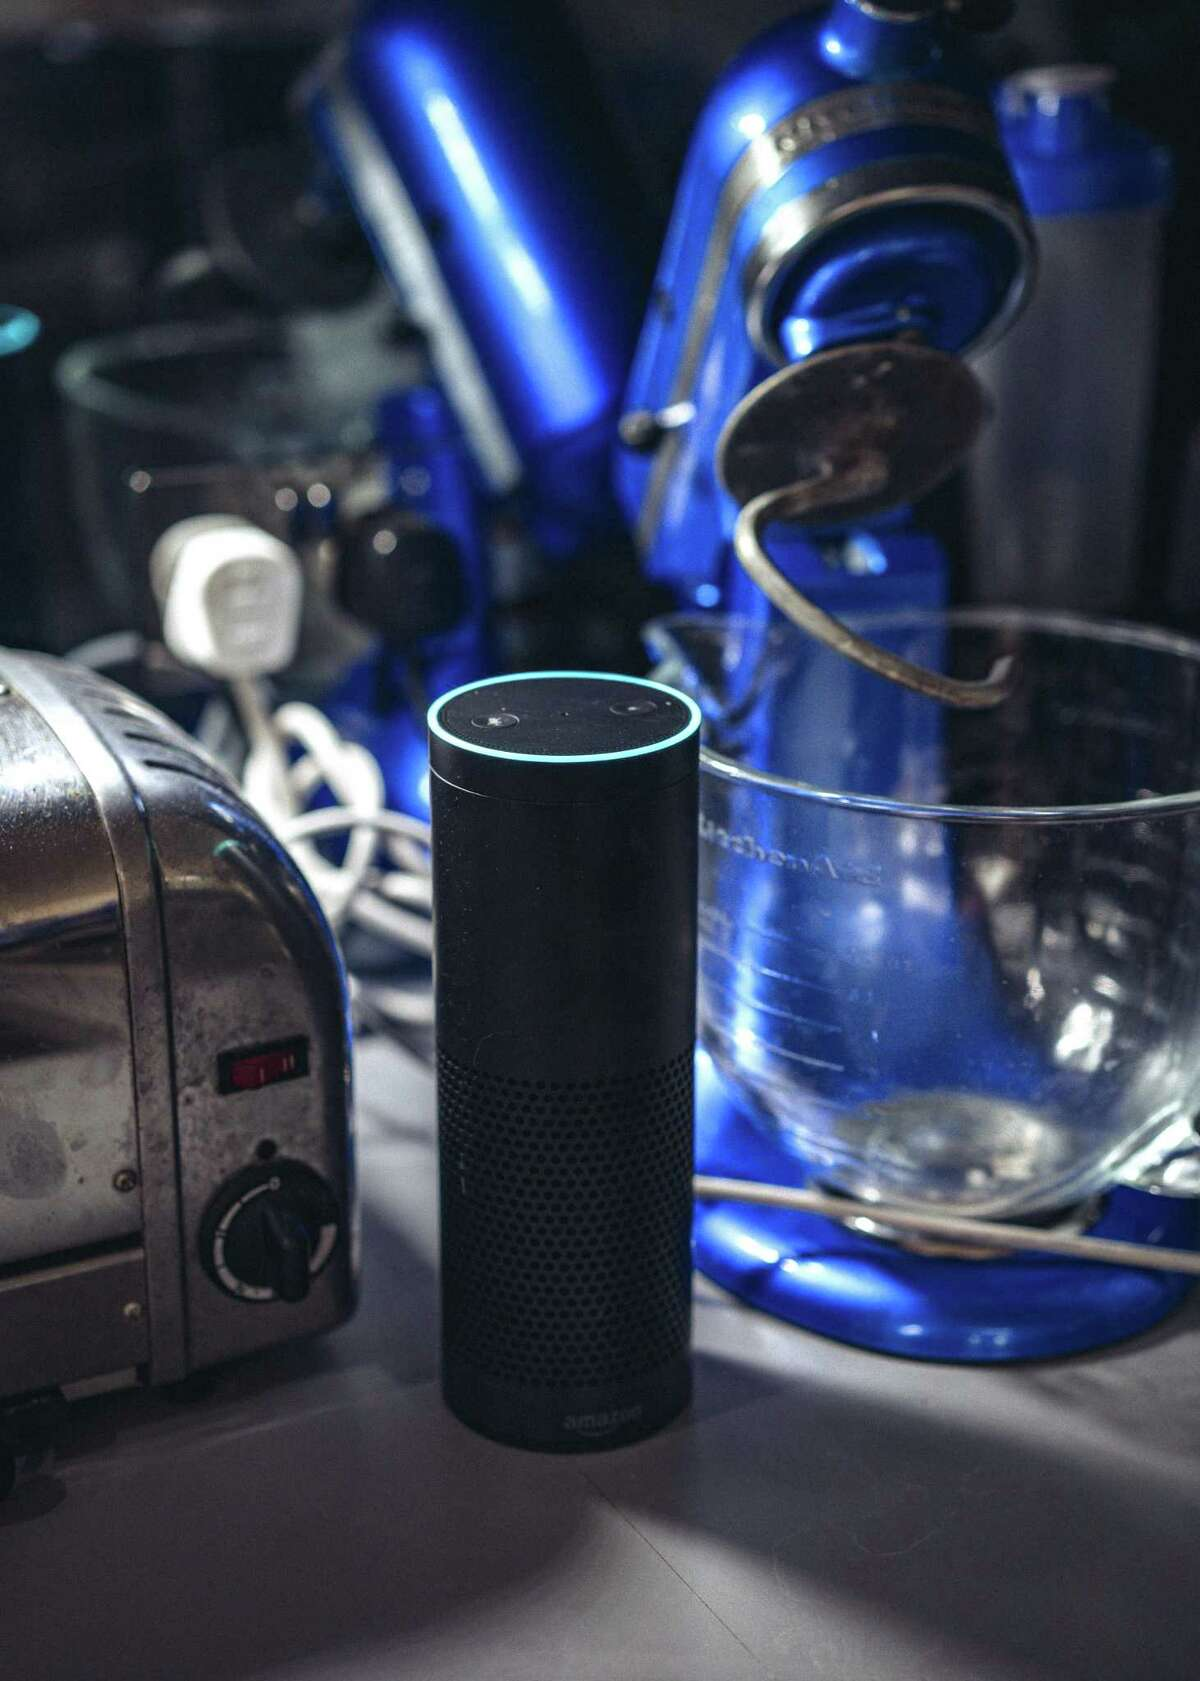 An Amazon Echo, which allows access to Alexa, Amazon's artificially intelligent assistant, in a home in London, Dec. 23, 2017.